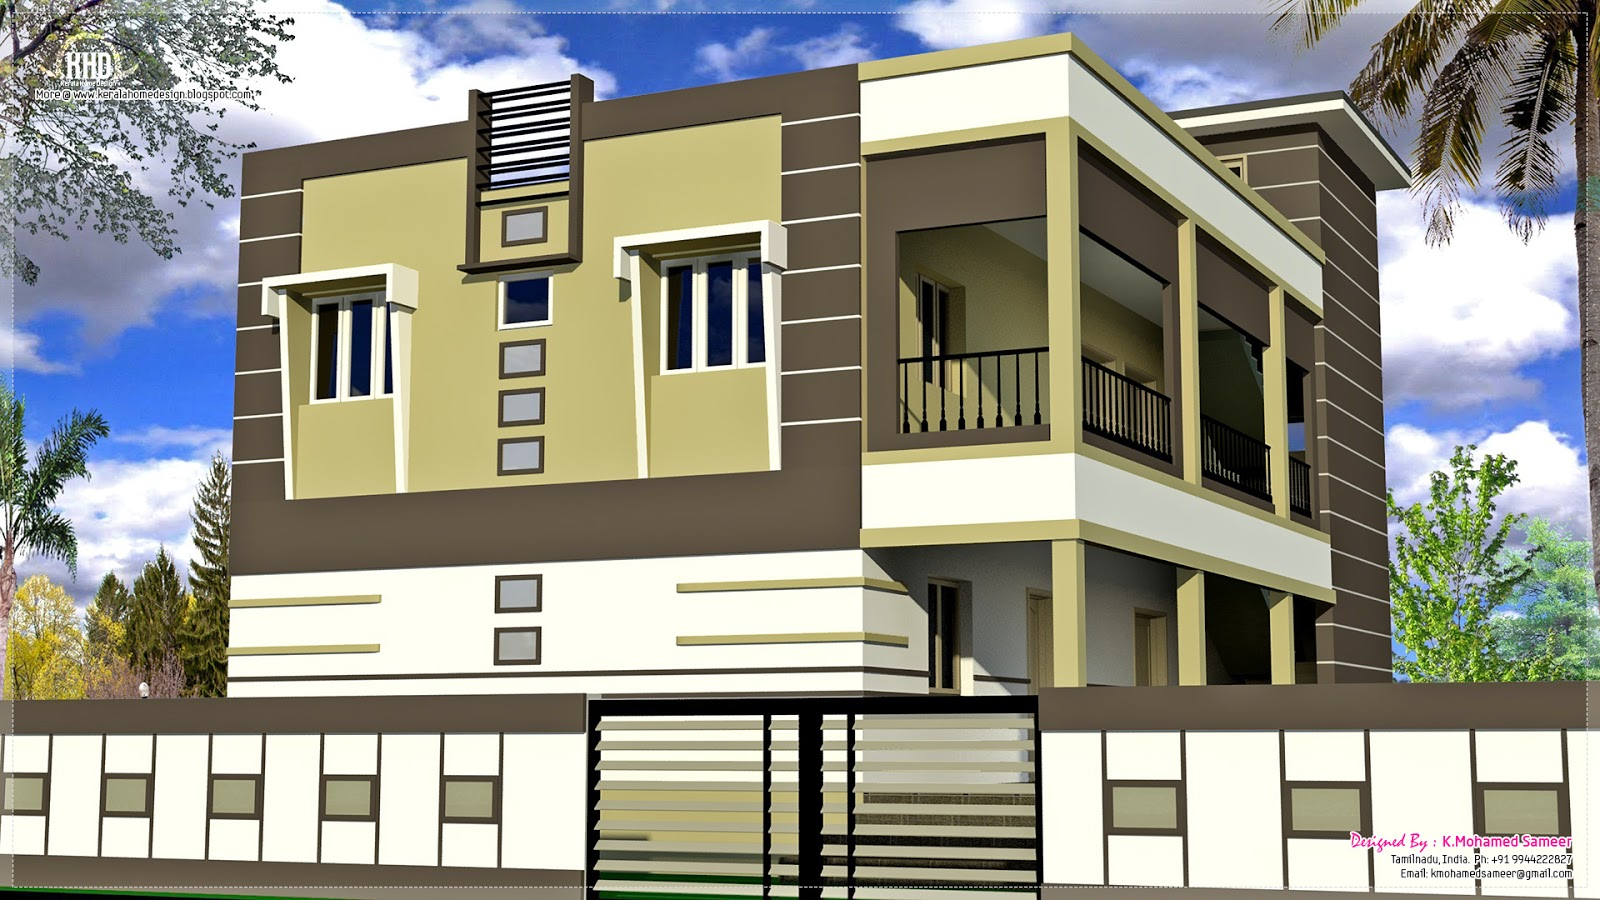 2 south indian house exterior designs kerala home design and floor plans Home outside design